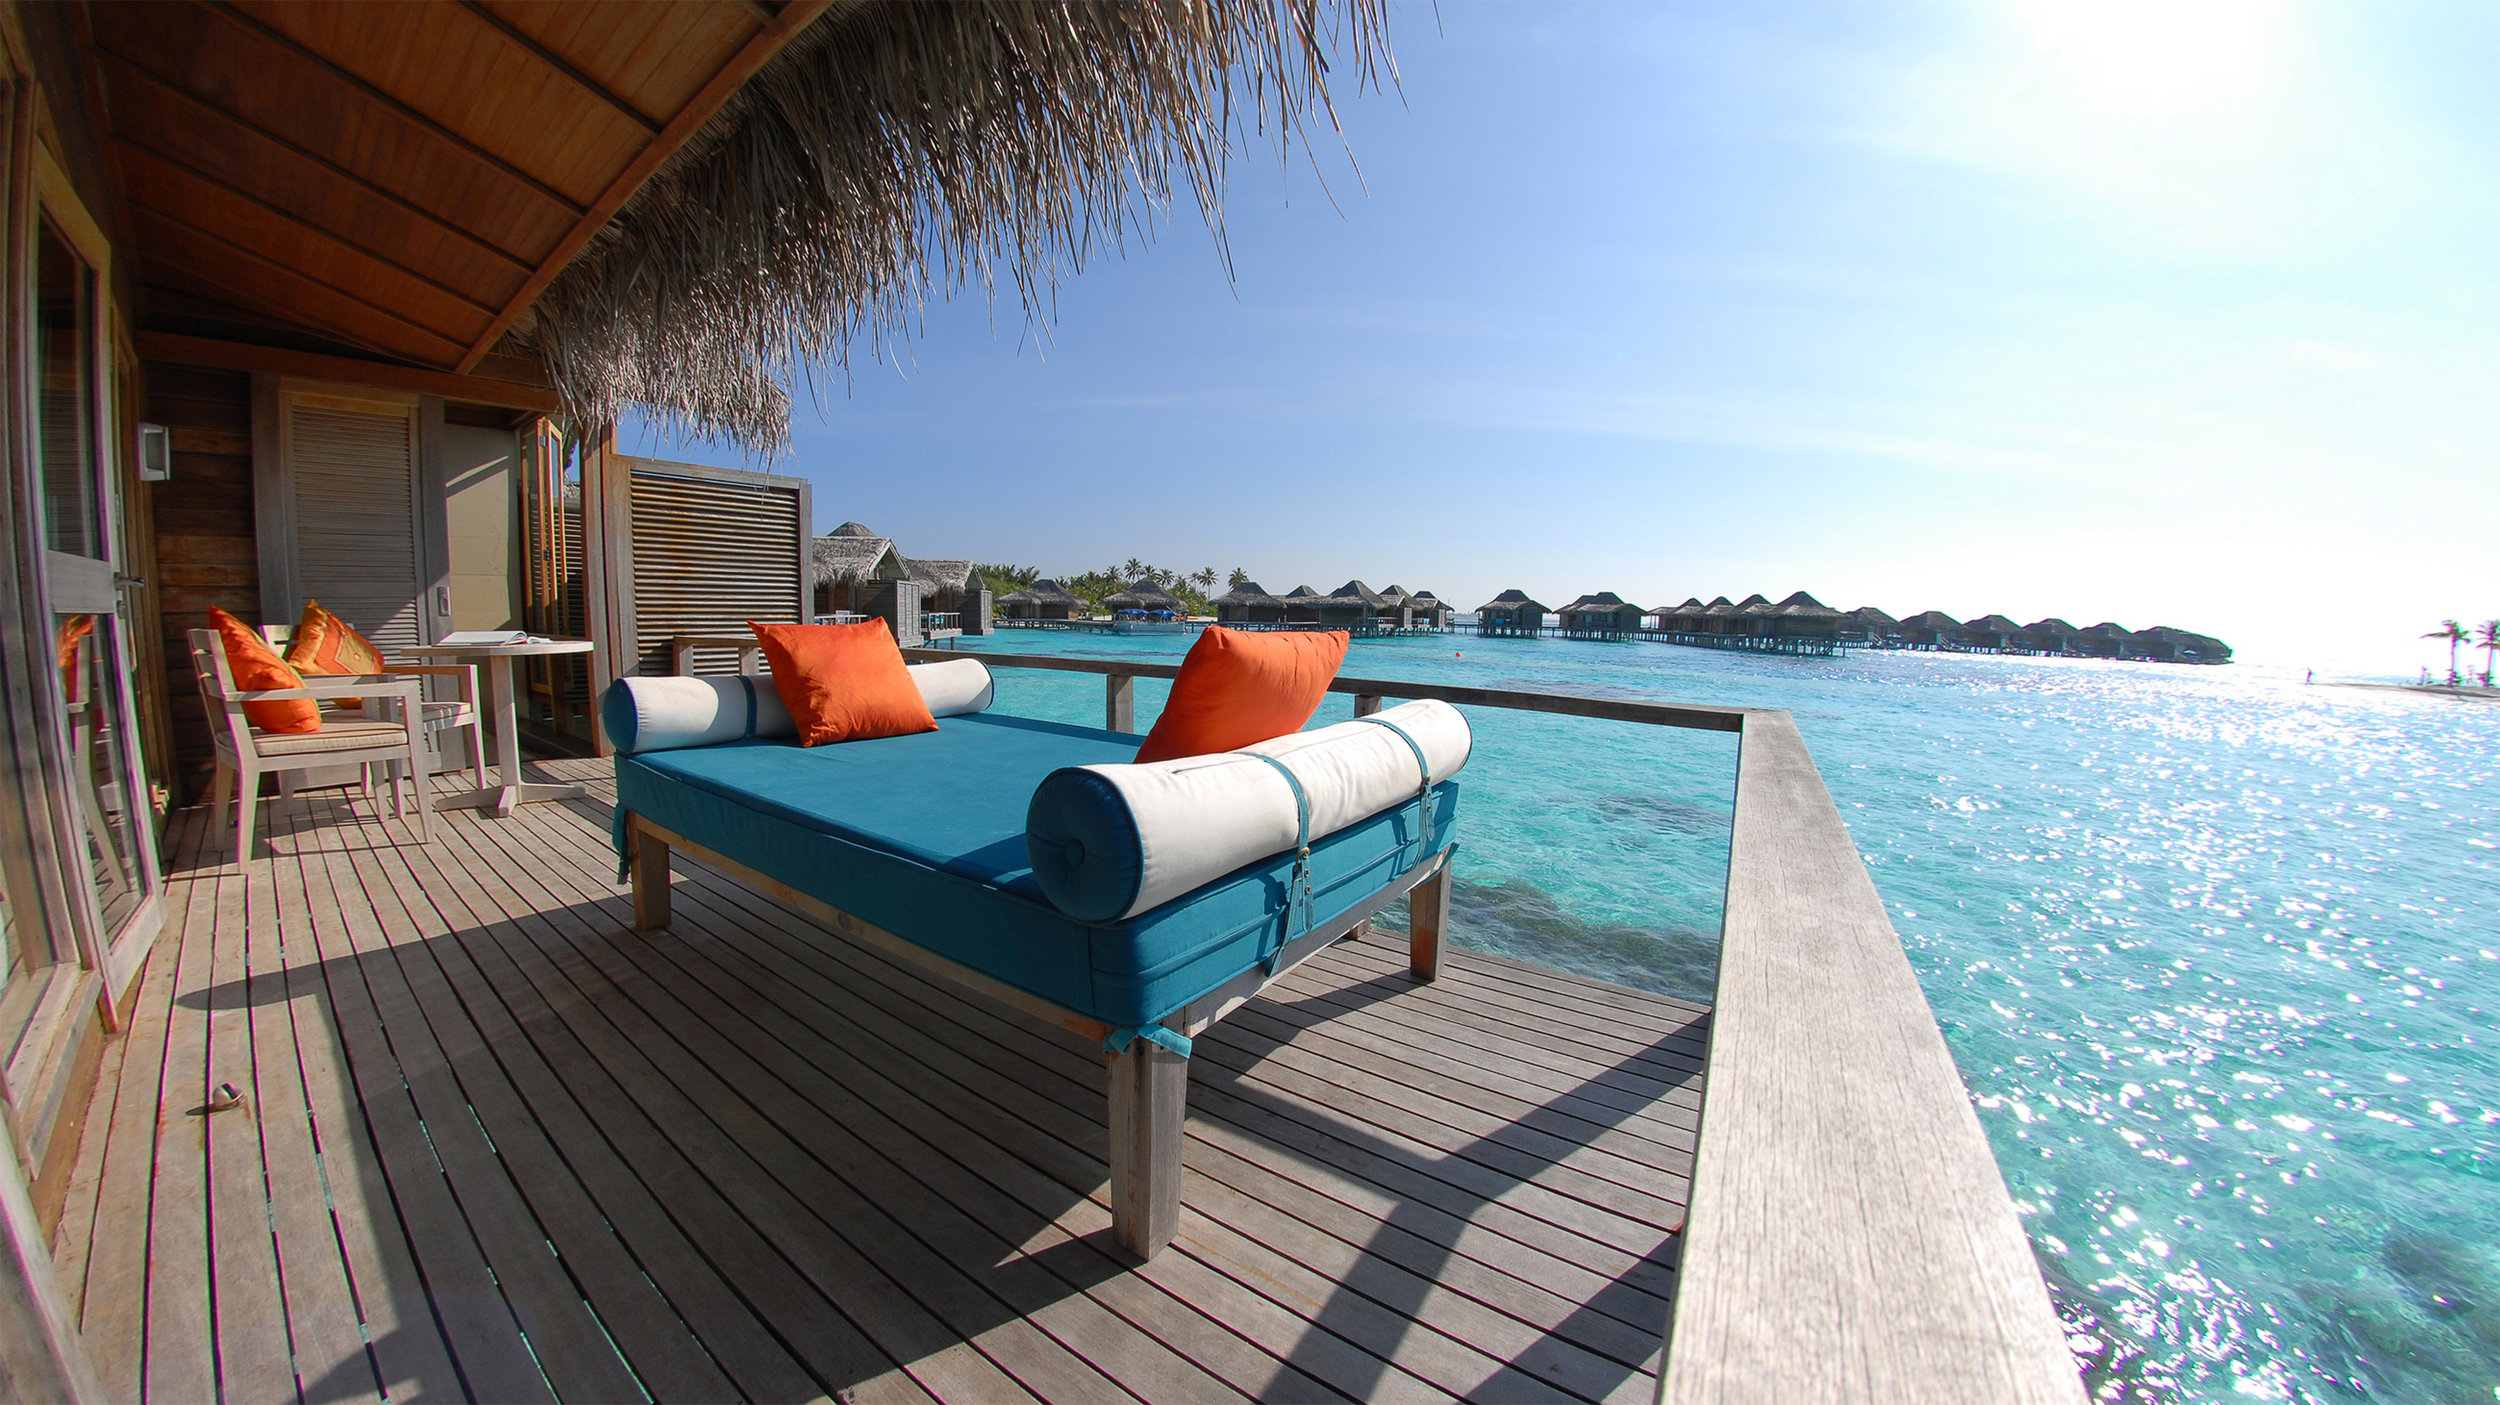 Over_Water_Bungalow_deck.jpg